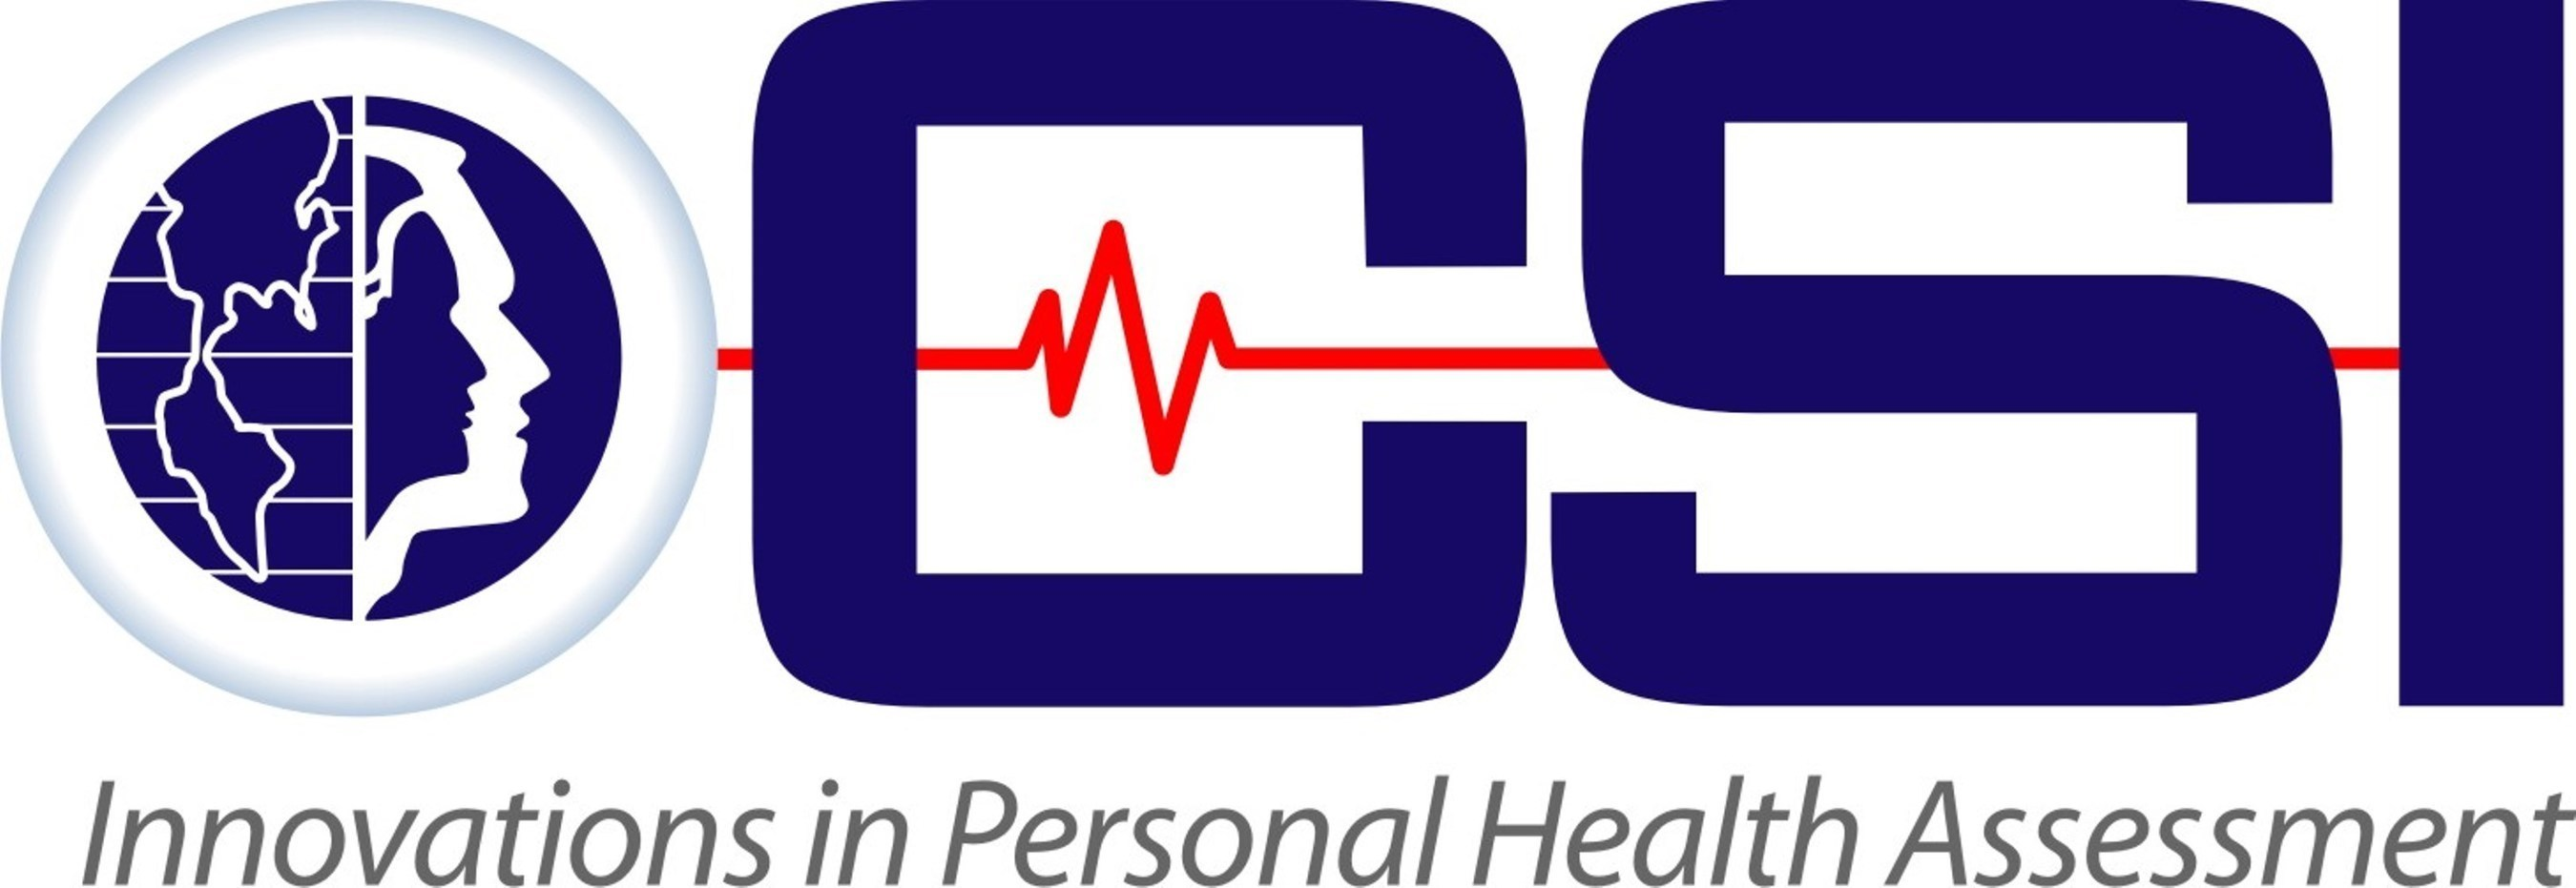 CSI Celebrates 38 Years In The Medical Health Kiosk Business And